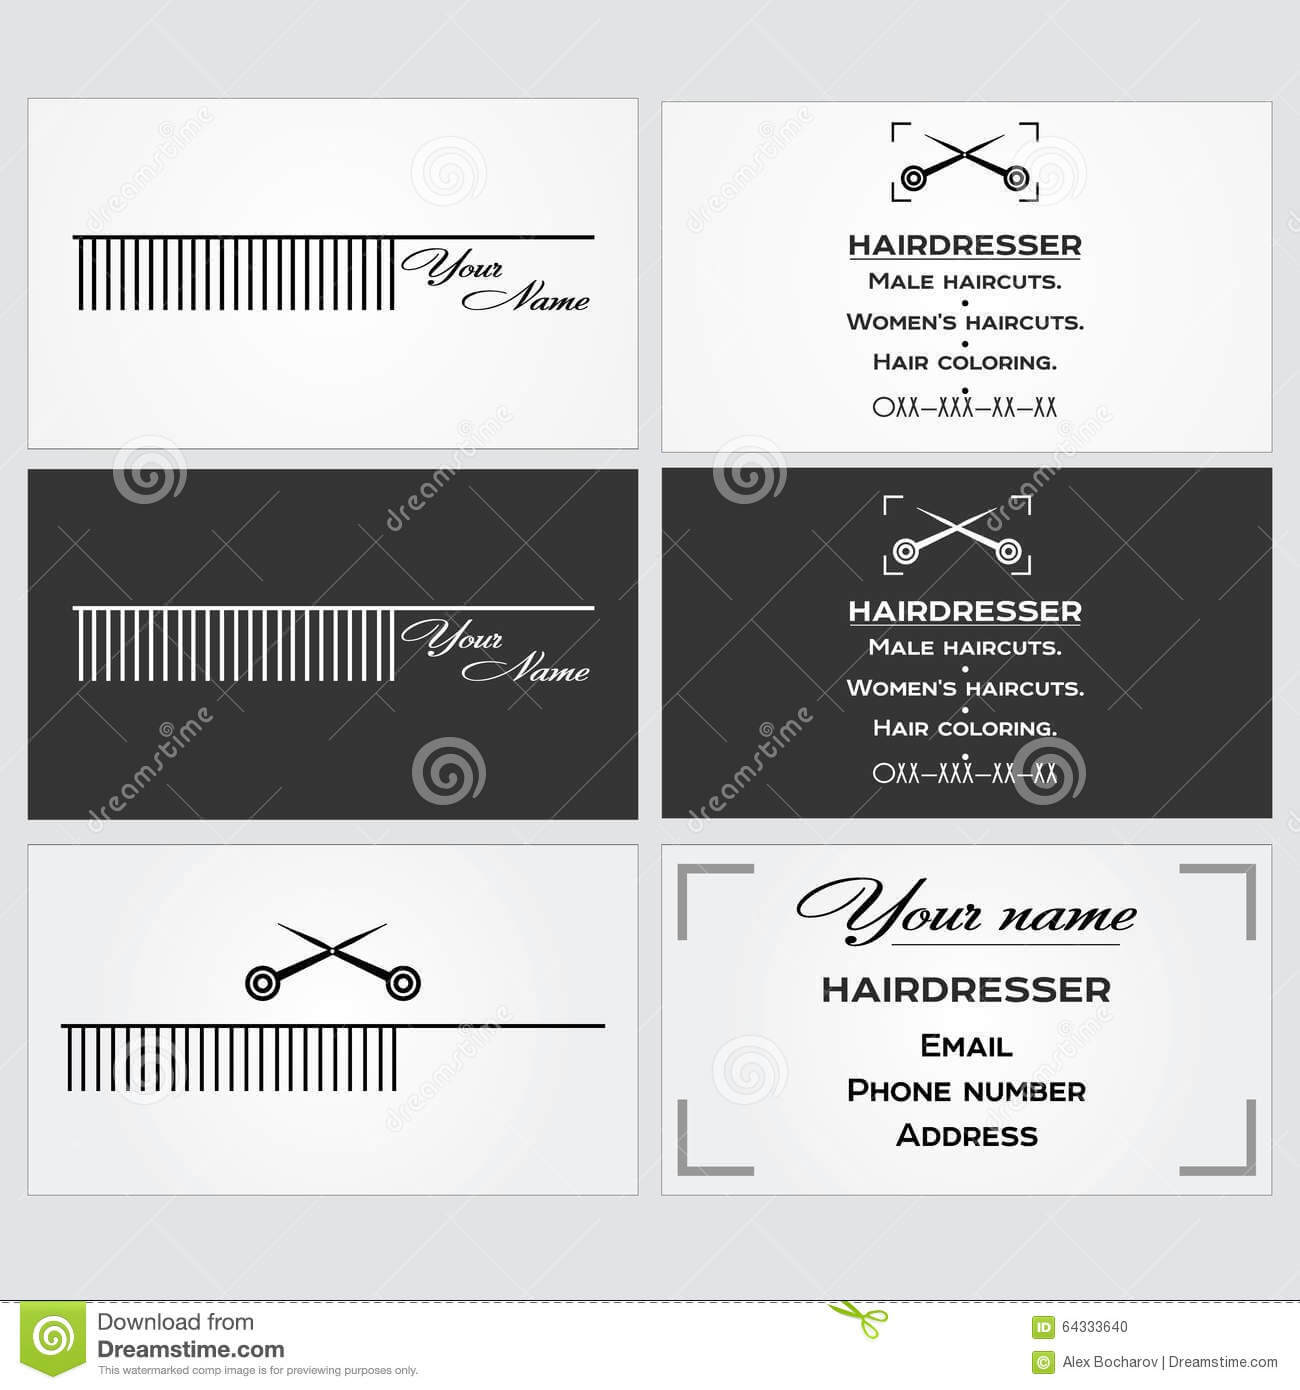 Business Card Template For A Hairdresser. Stock Vector Within Hairdresser Business Card Templates Free